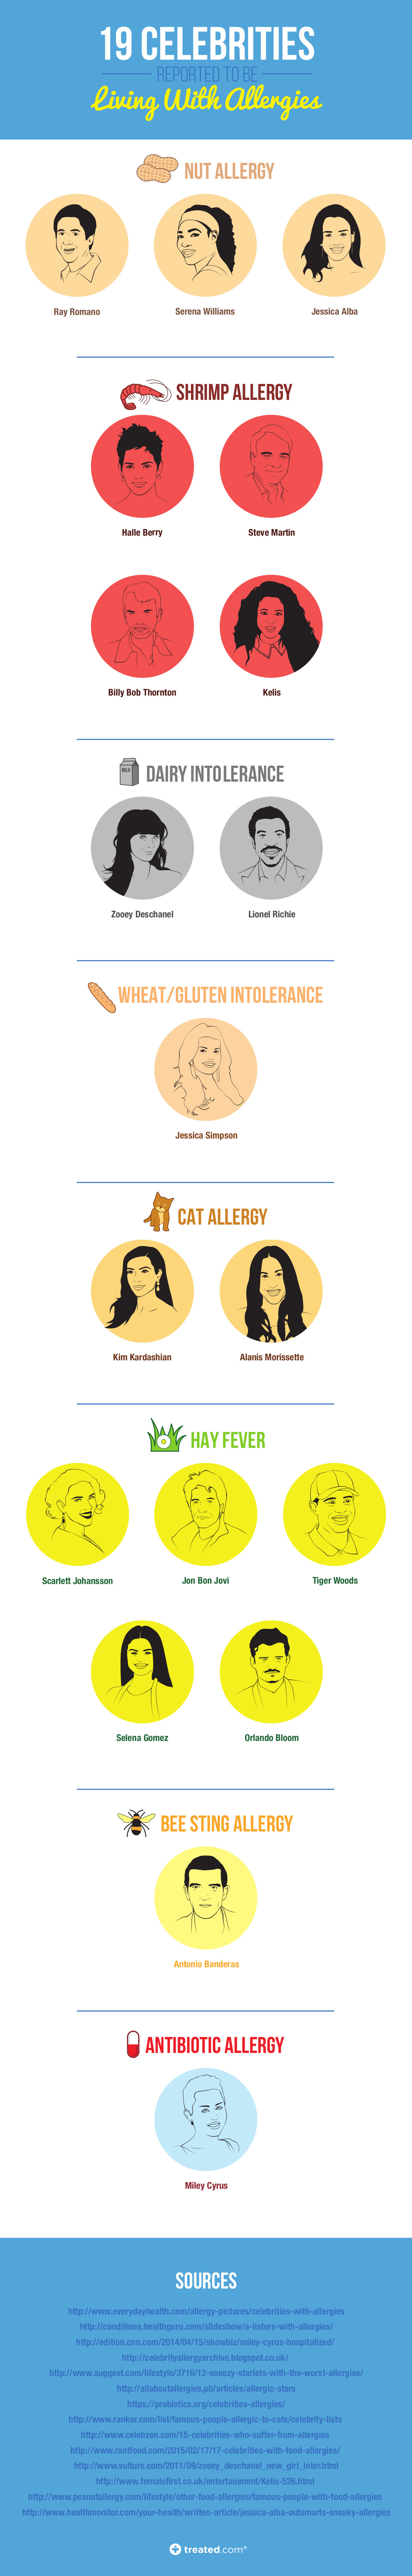 TREATED - Celebrity Allergy Infographic